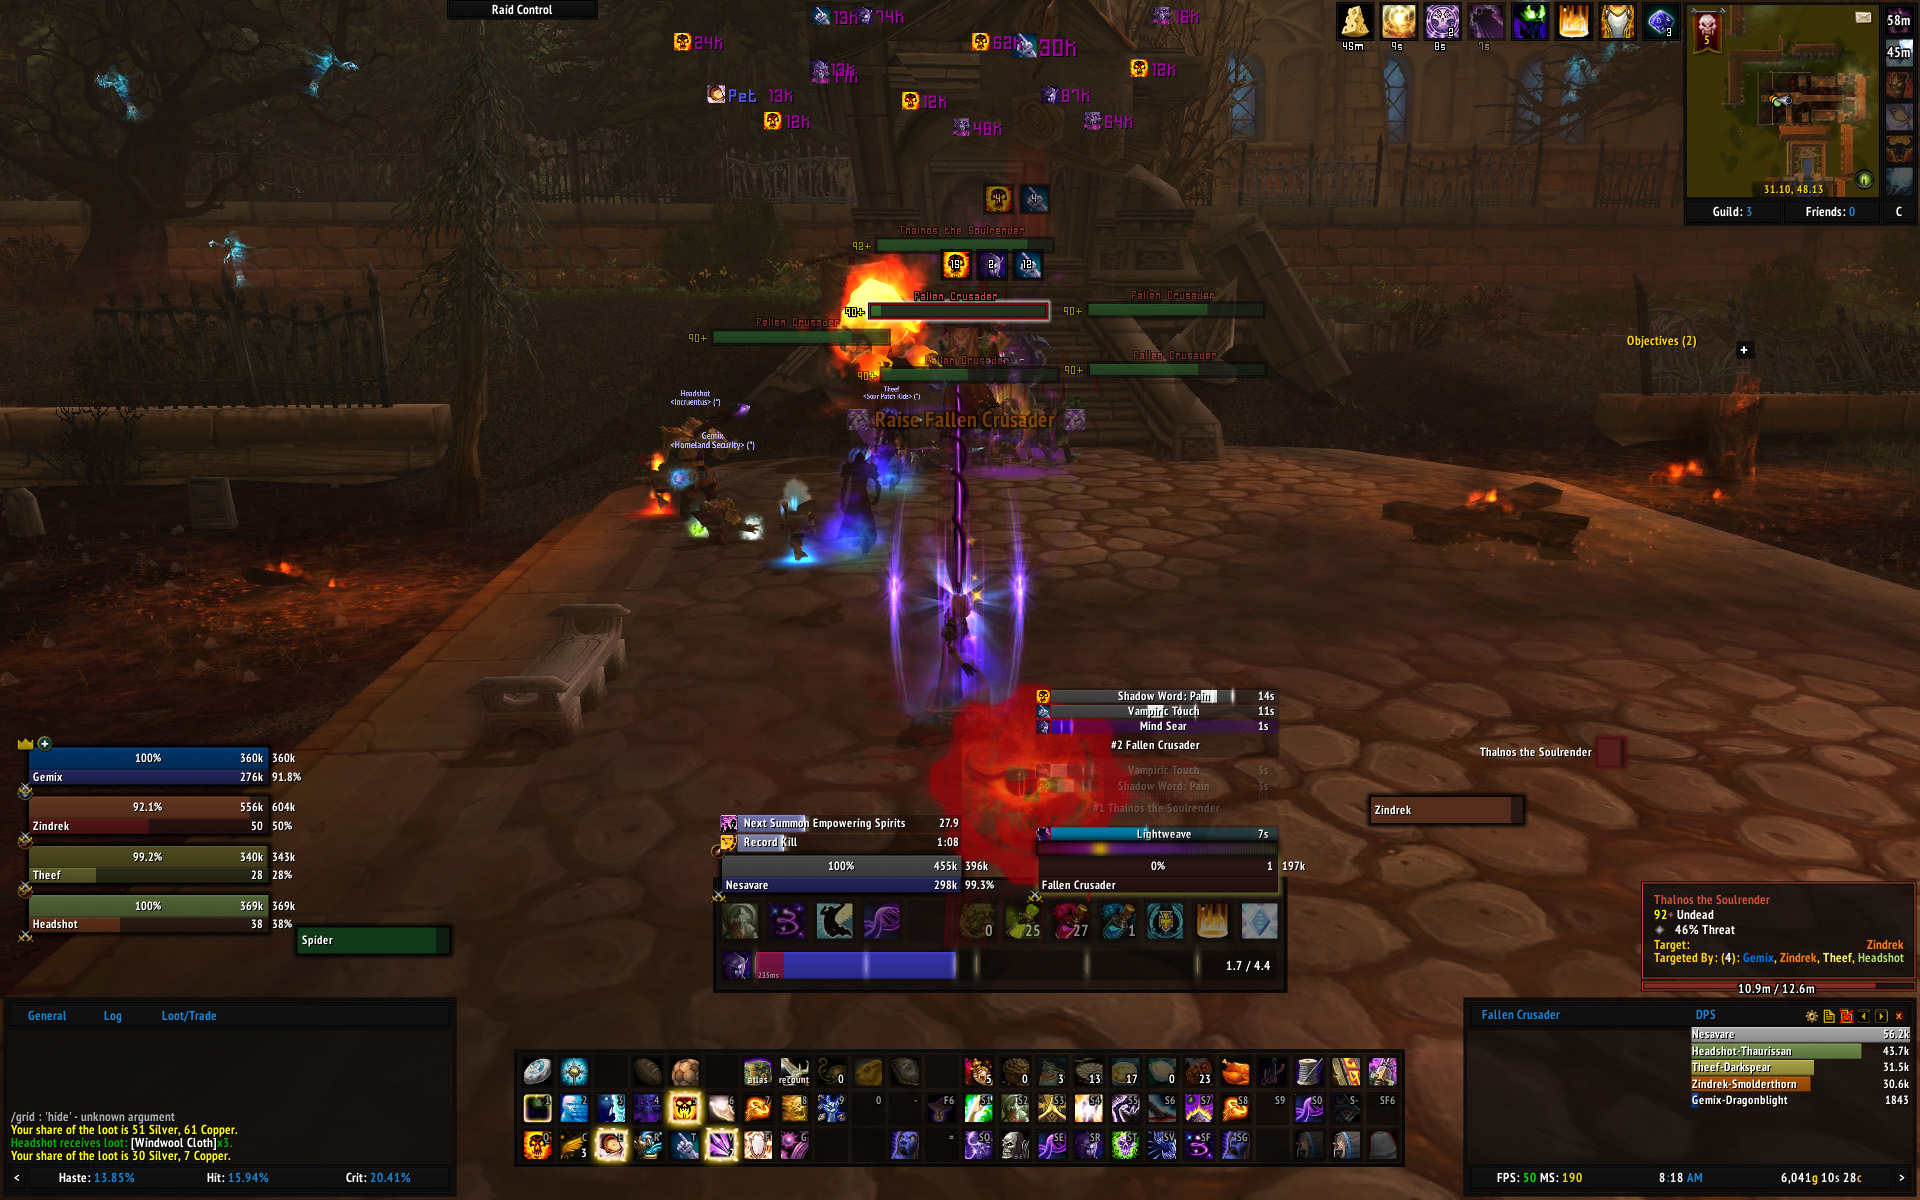 Best Wow Ui 2020 Reader UI of the Week: Light and shadow